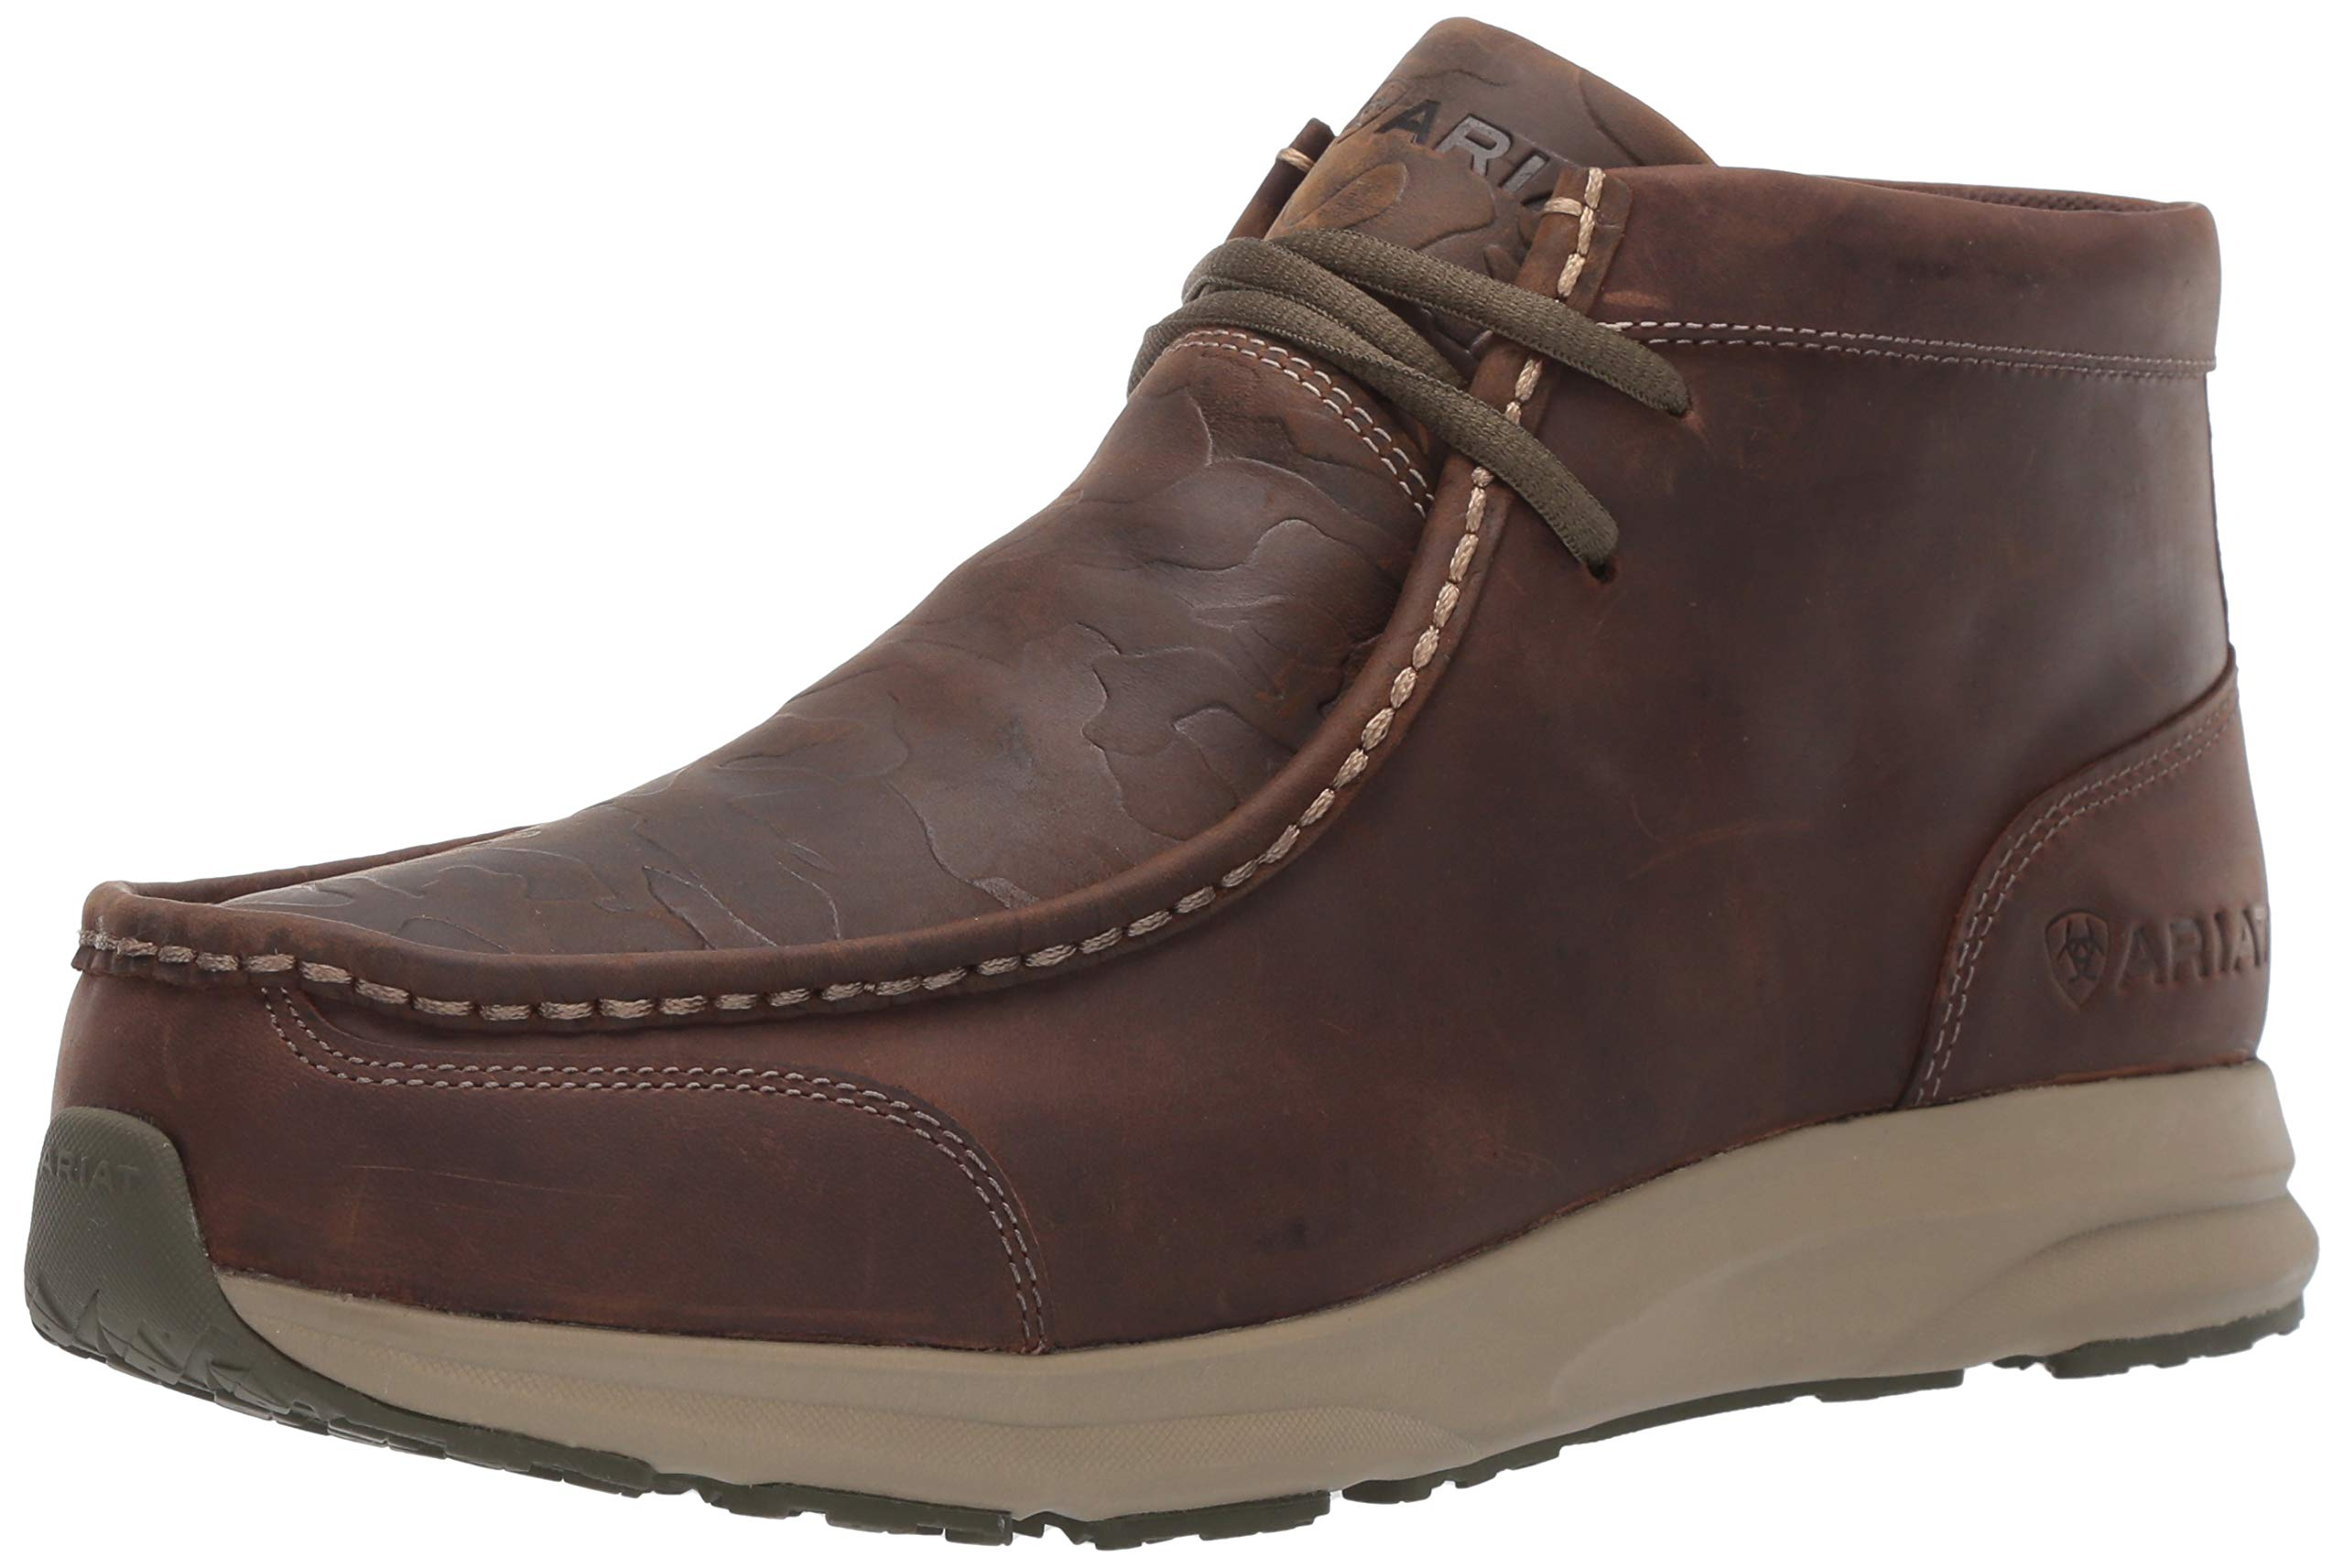 Ariat Men's Spitfire Western Boot, Distressed Brown/camo Embossed, 7.5D